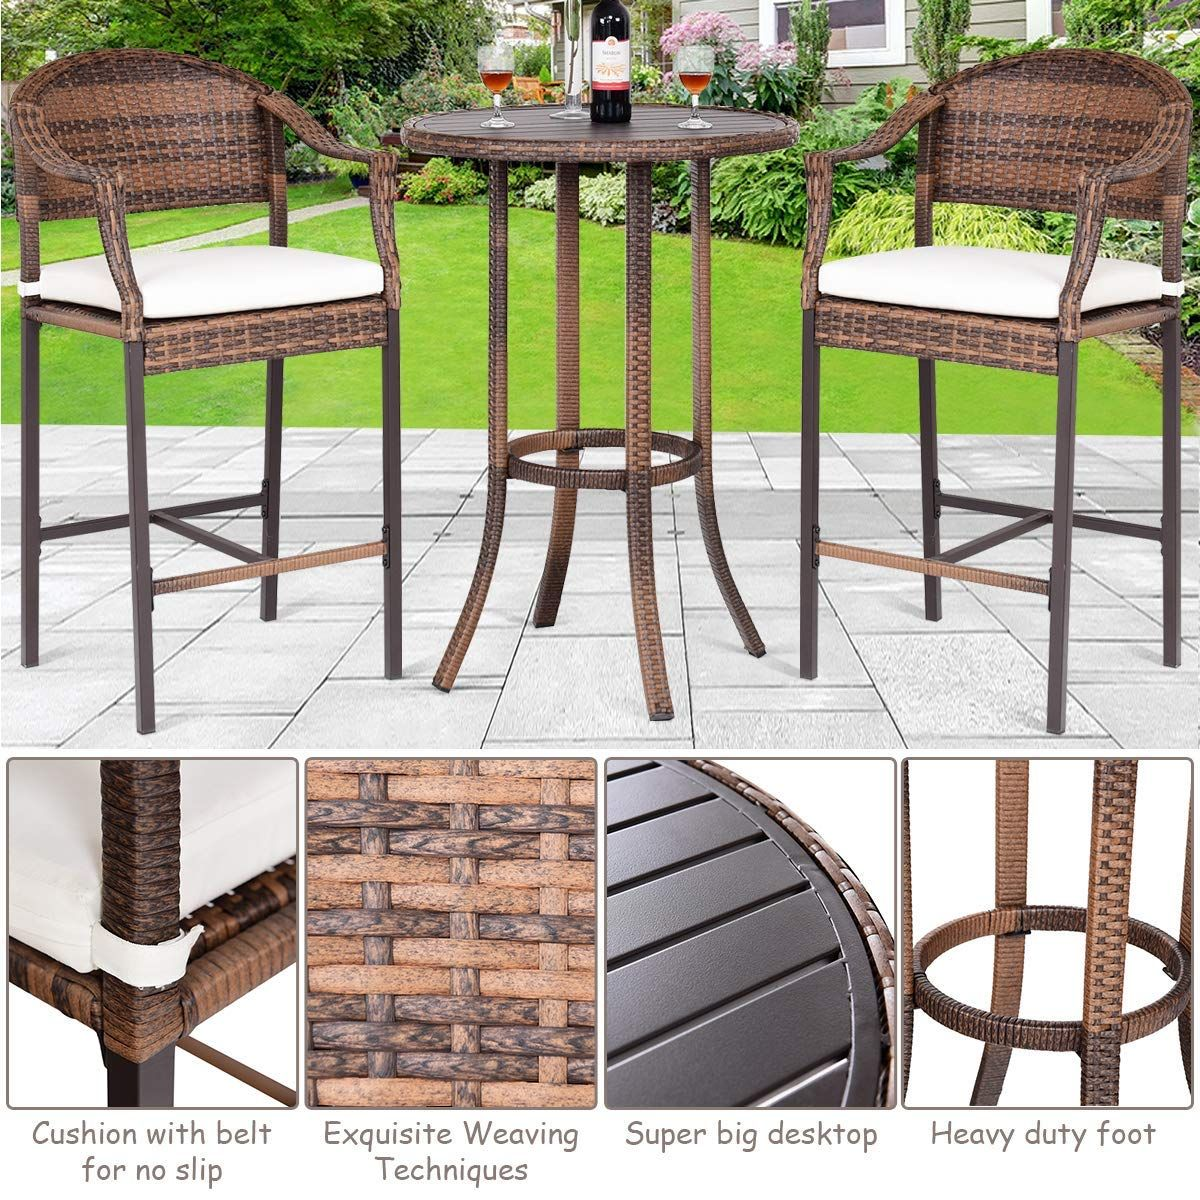 6732493310aa 3-Piece Wicker Rattan All Weahter Durable Poolside Balcony Garden Furniture  Bar Height Outdoor Table and Chairs Set